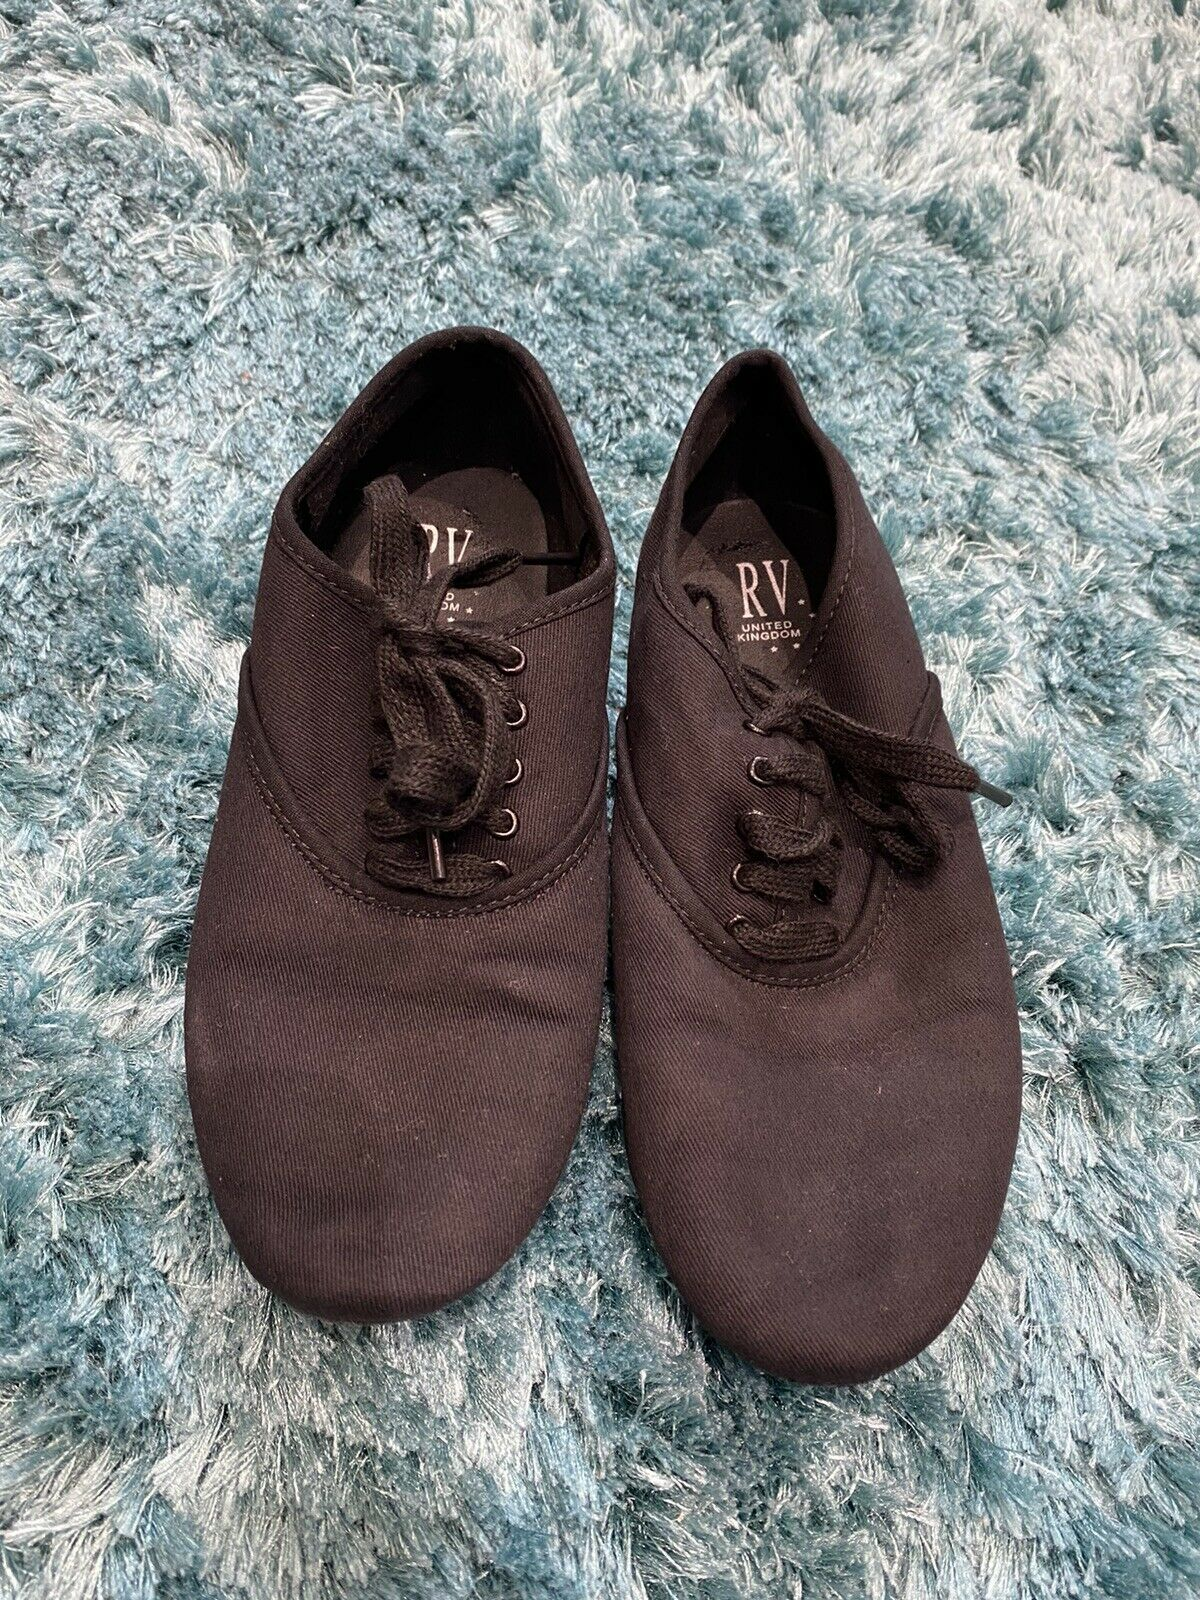 Boys Black Character Shoes Size 3